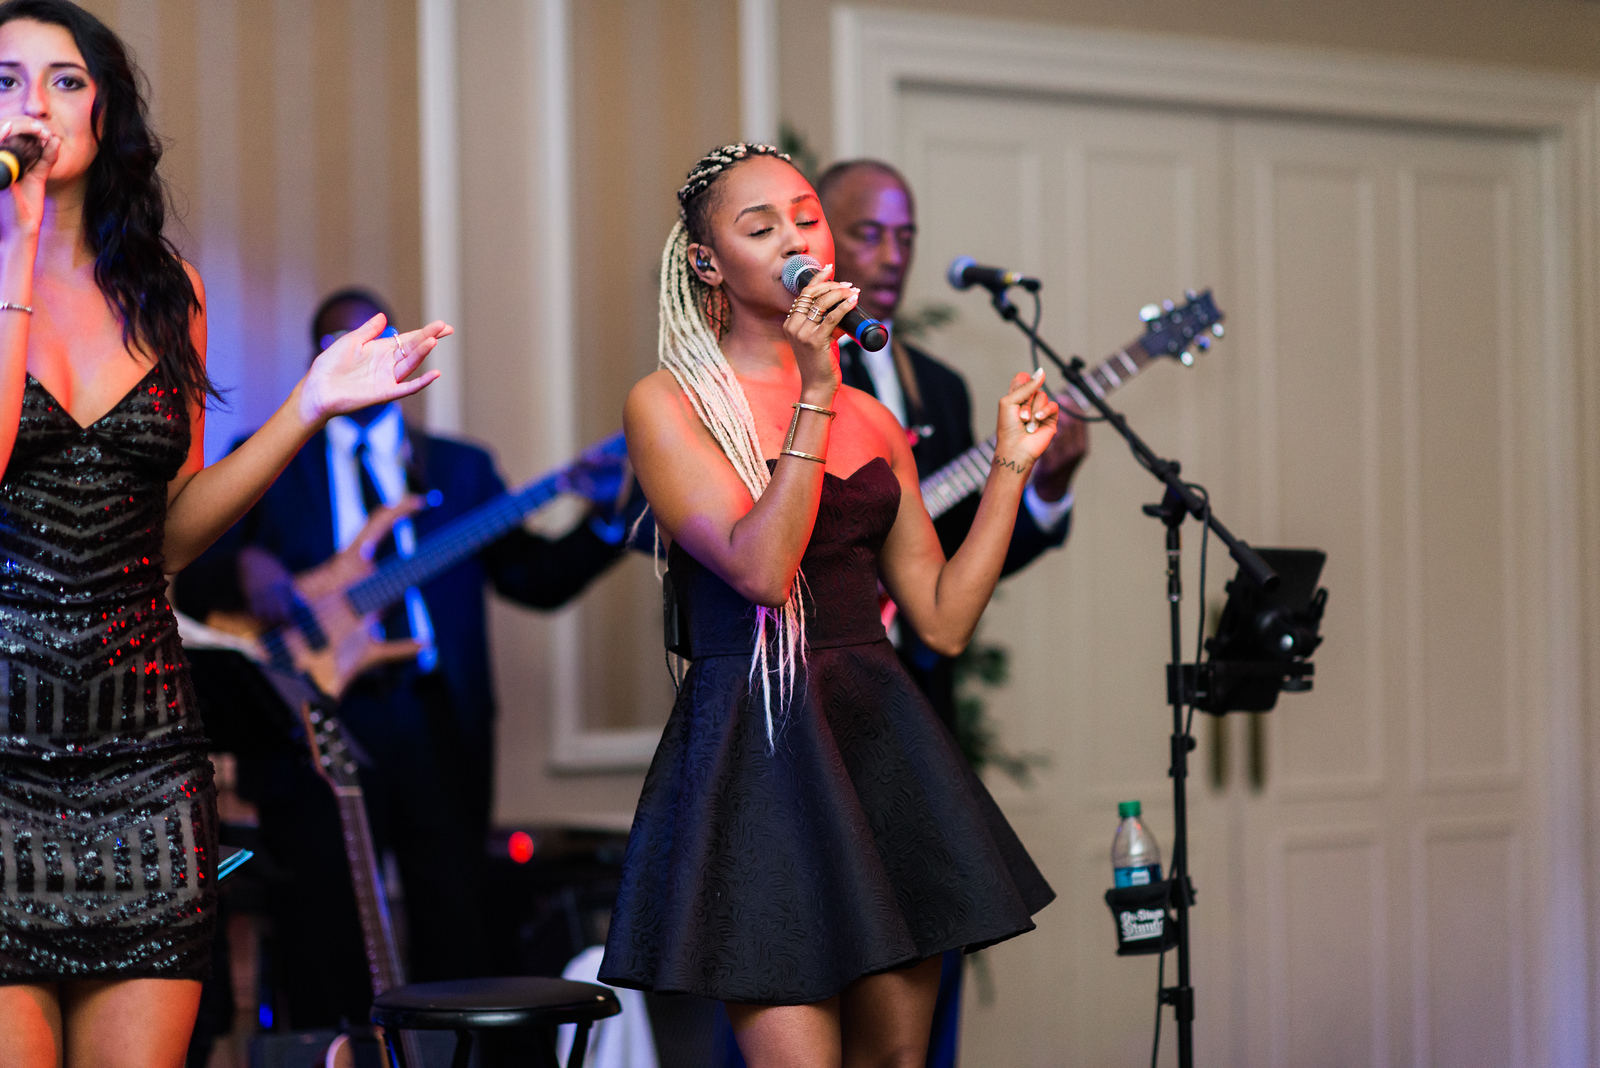 The uptown band was AMAZING at macy & tim's wedding - @uptown band